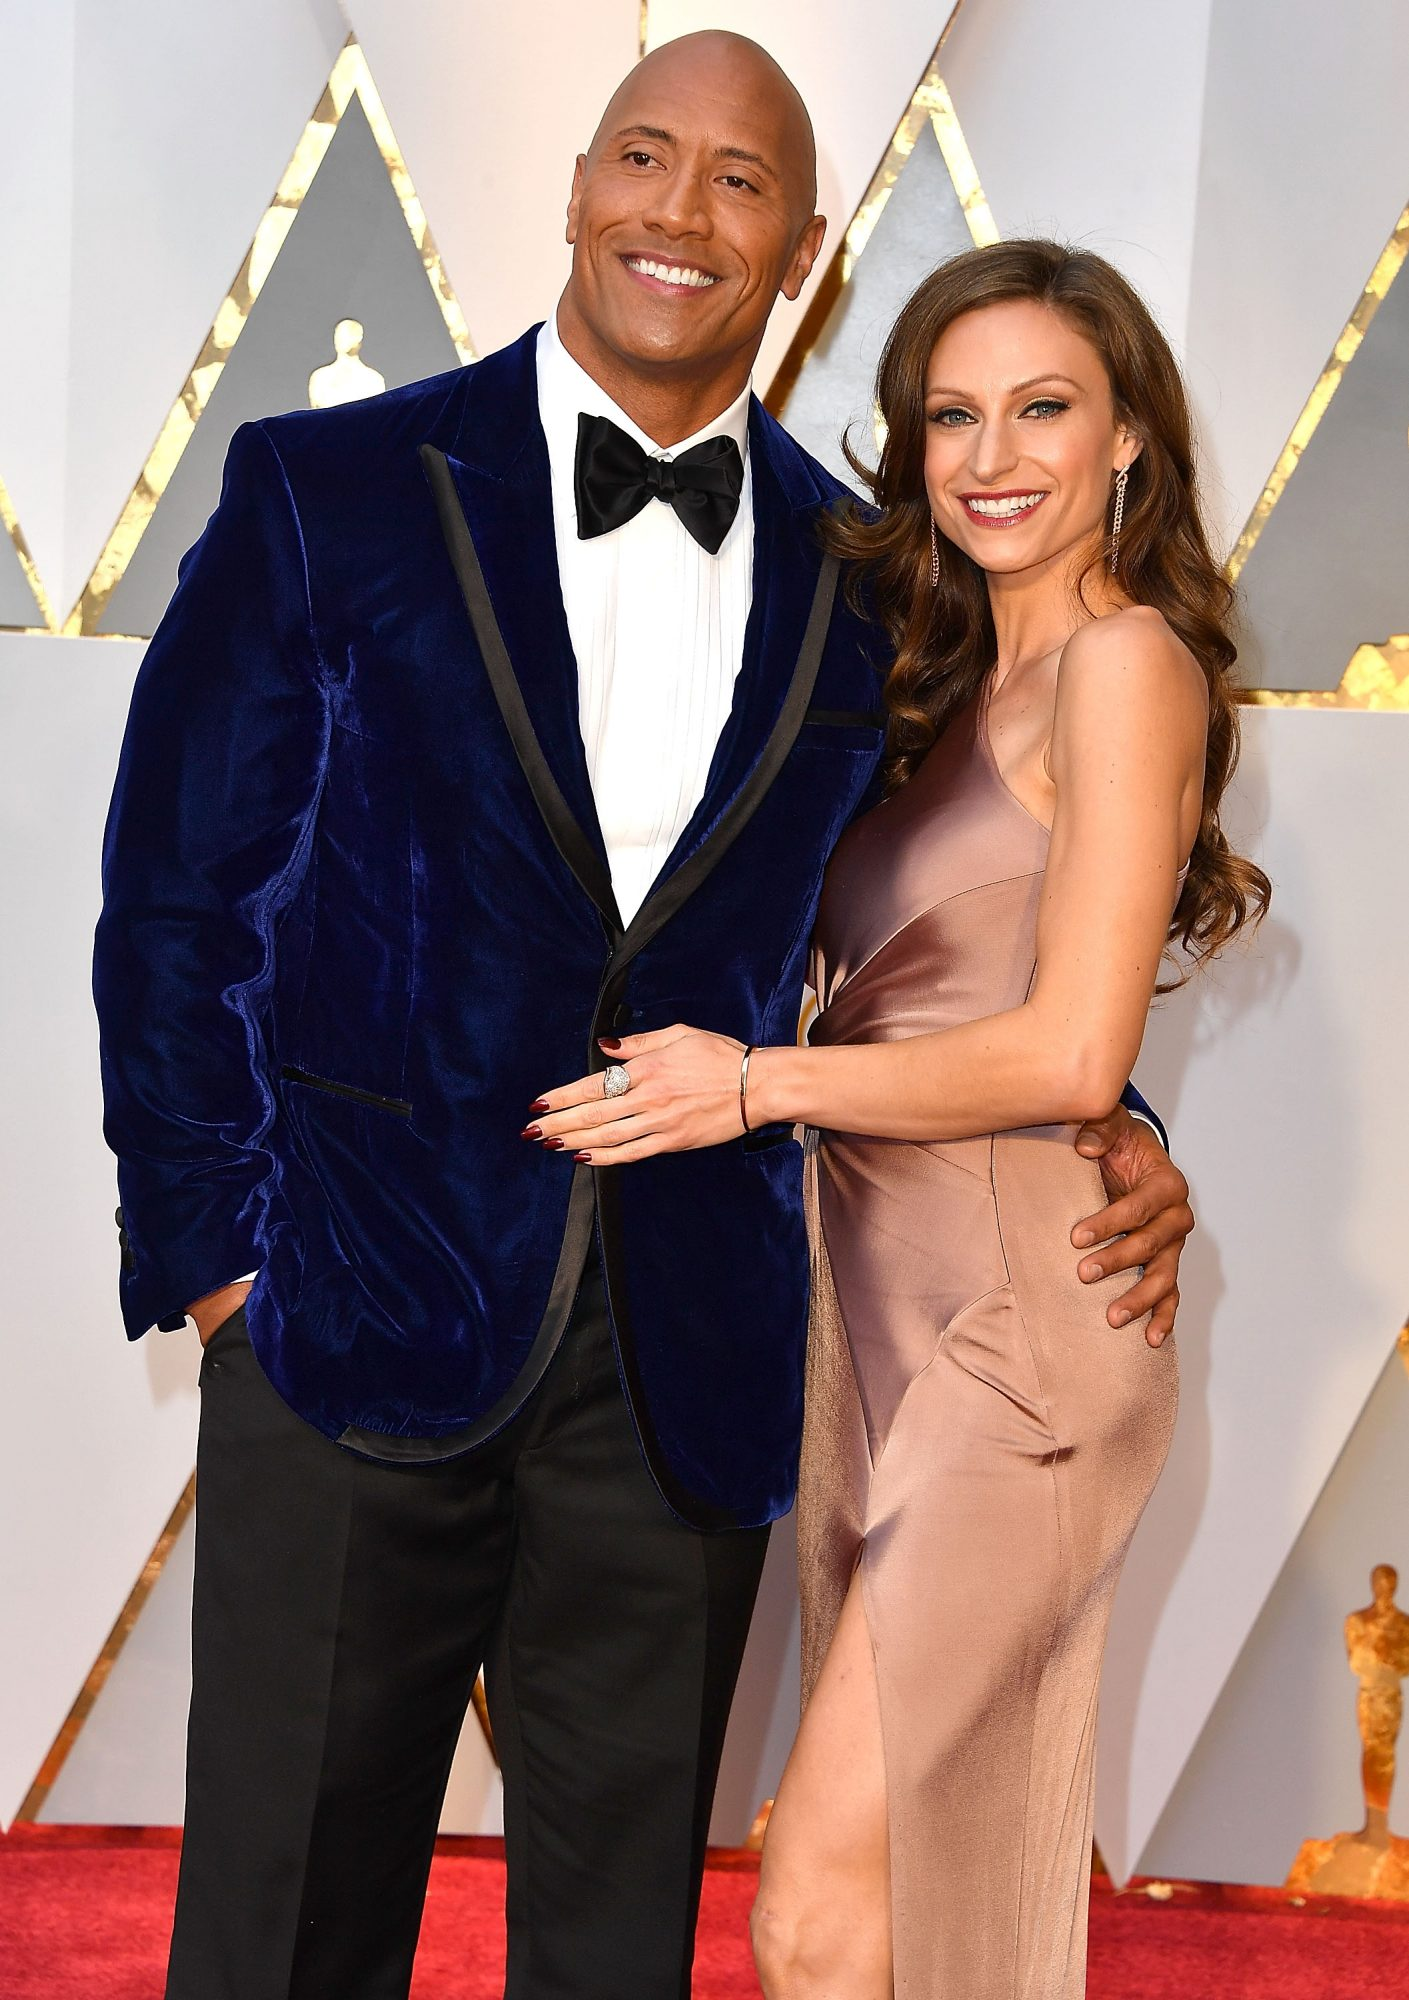 dwayne johnson and lauren hashian on red carpet